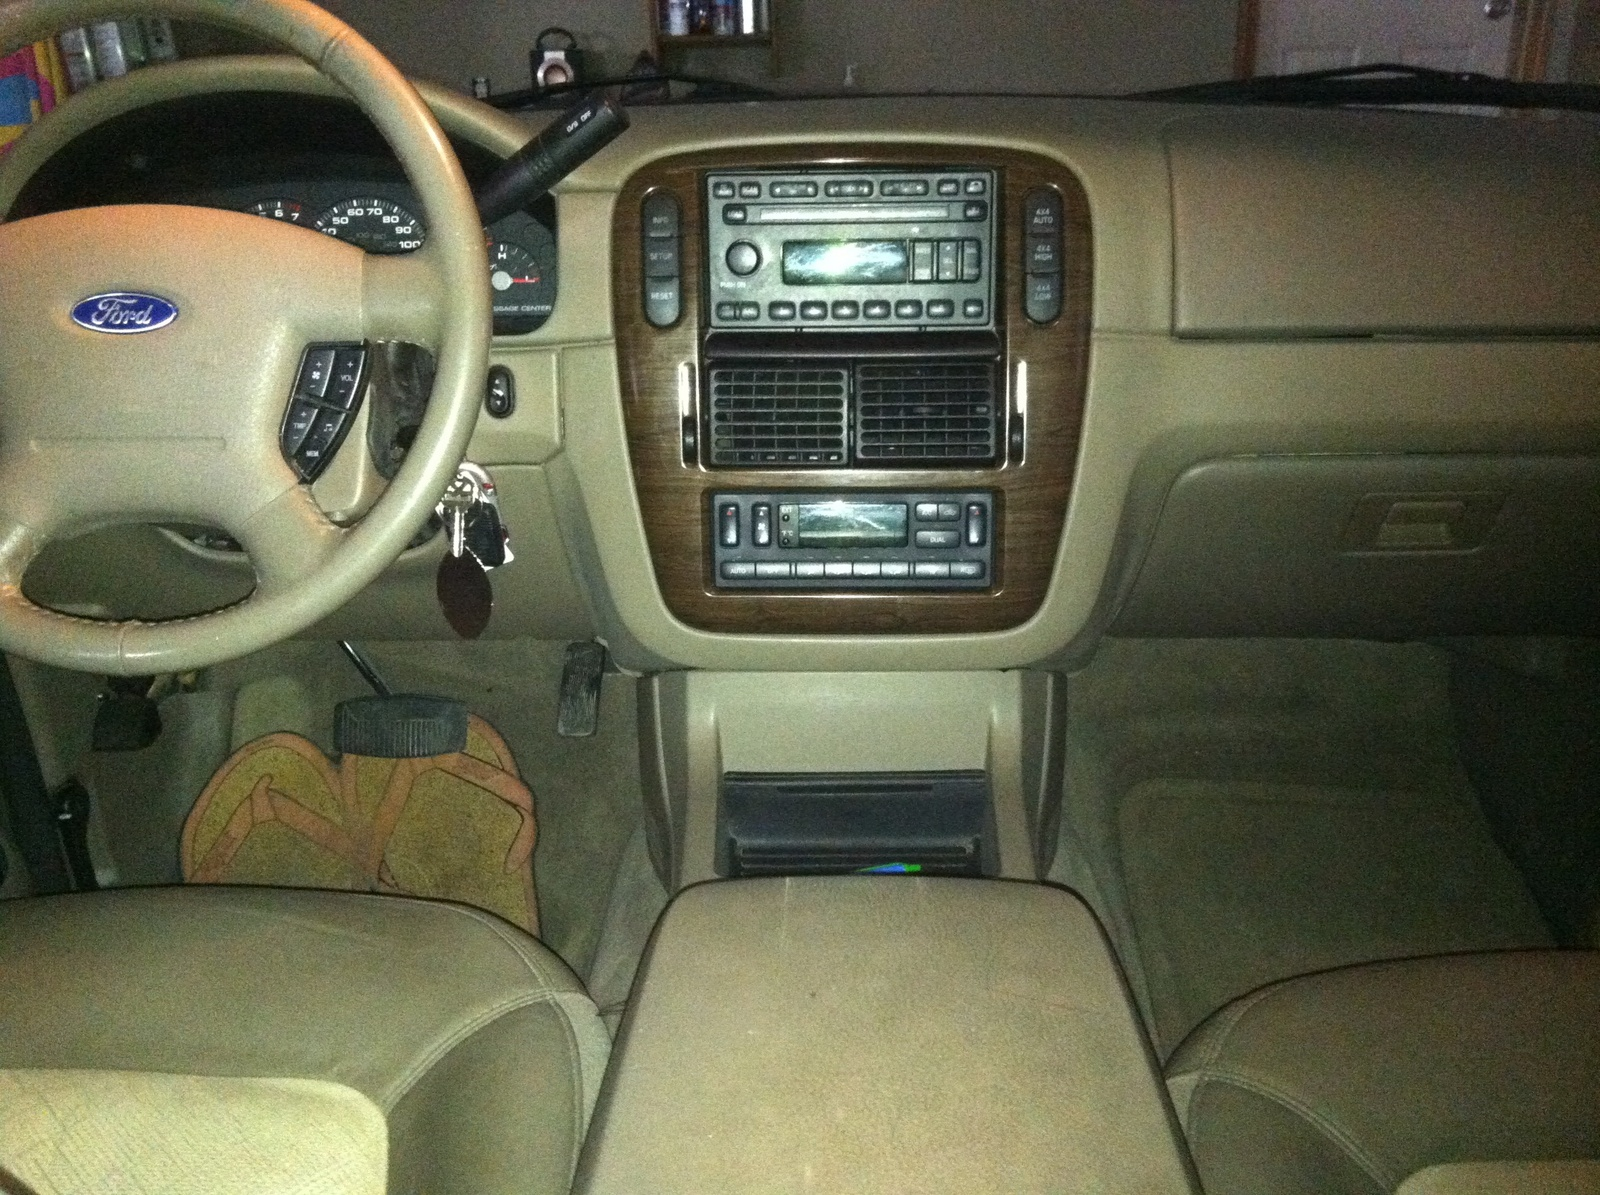 displaying 20 images for 2005 ford explorer interior - 2005 Ford Explorer Interior